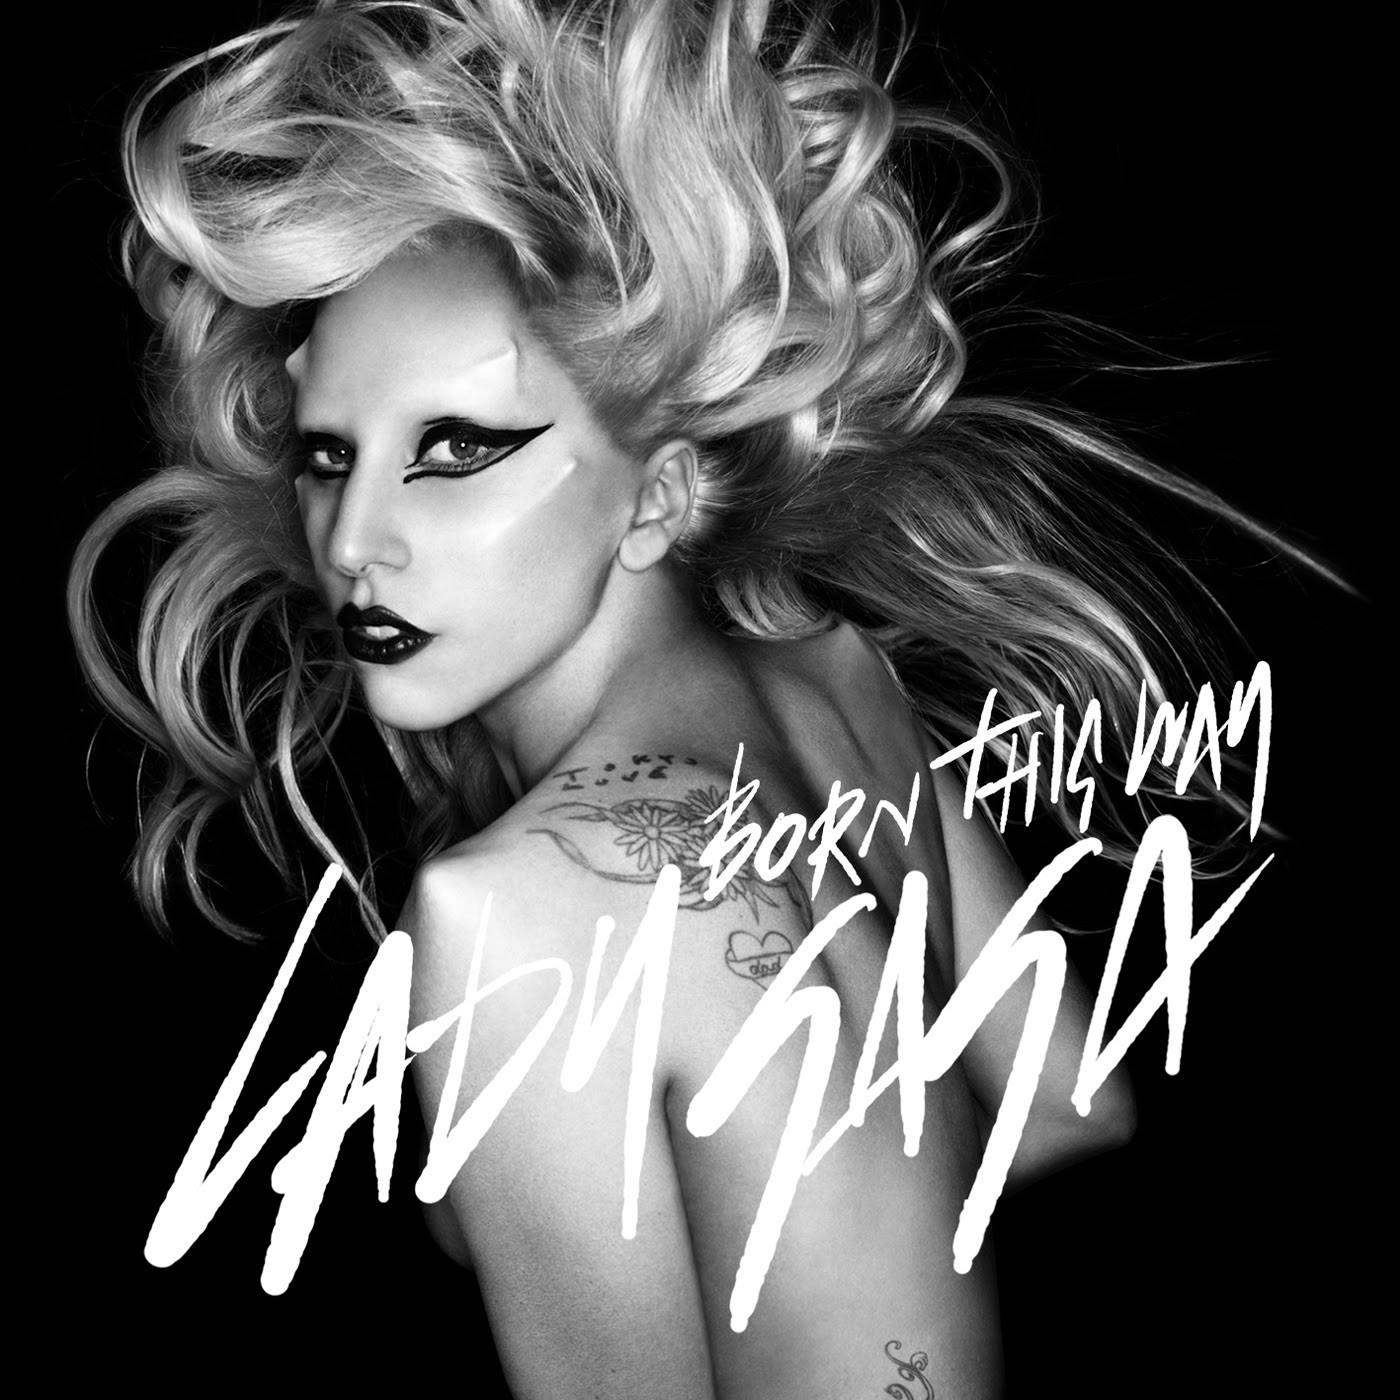 http://1.bp.blogspot.com/-DRO0bvyEVC4/TeEmXb9UuQI/AAAAAAAAAMs/U5ja7NtKL48/s1600/%255BAllCDCovers%255D_lady_gaga_born_this_way_2011_retail_cd-front.jpg